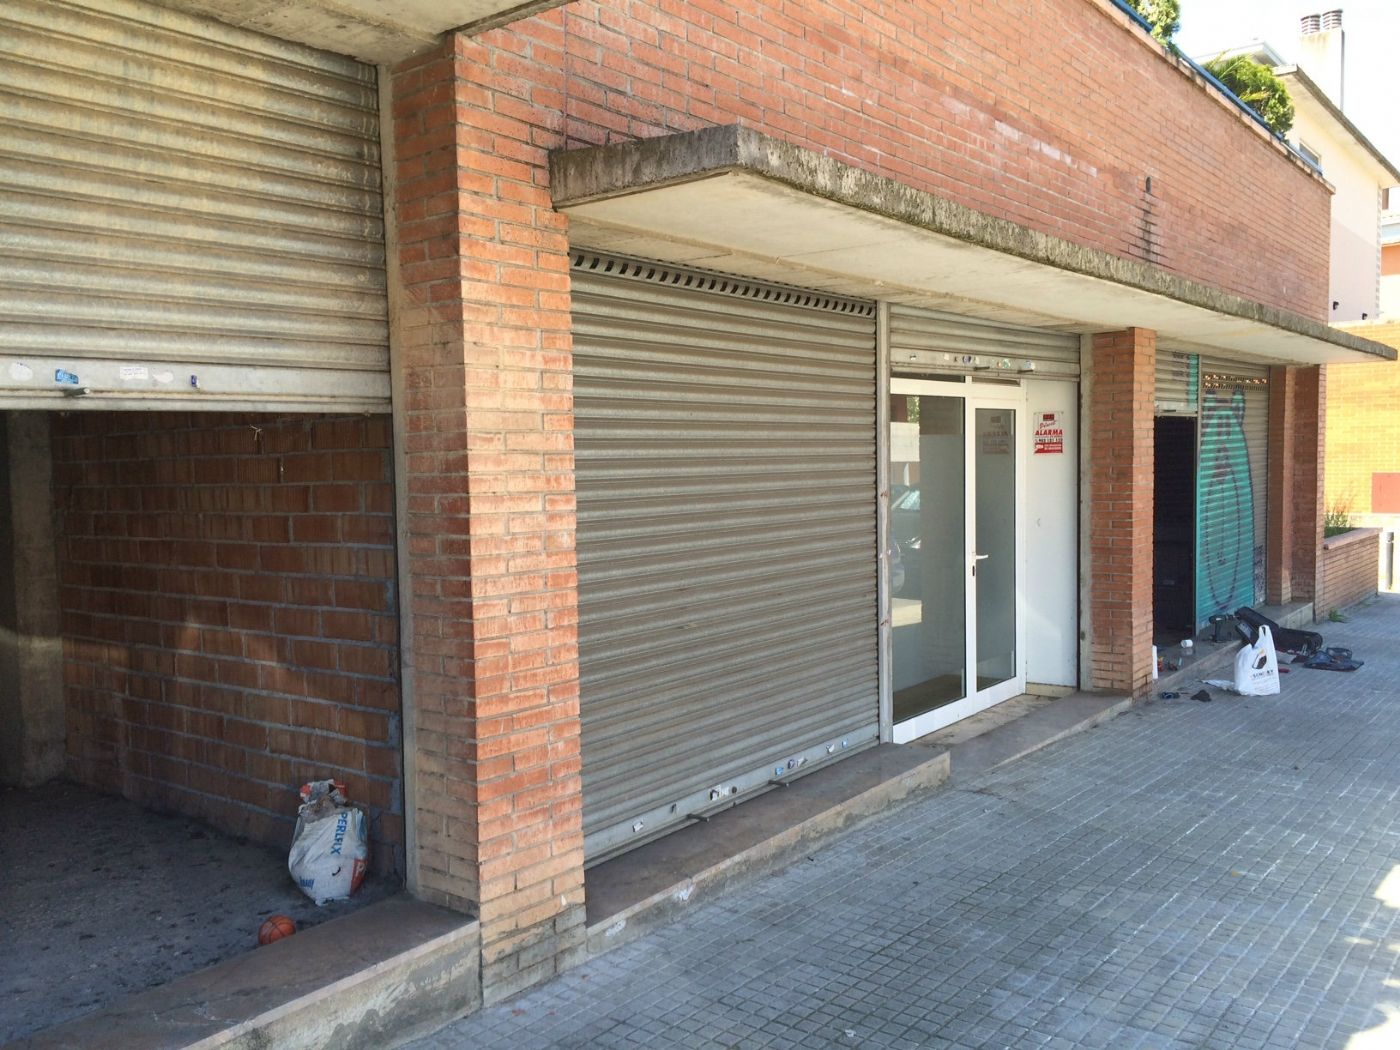 Alquiler Local Comercial  Carrer pont. Local 300 m2 ideal supermercado